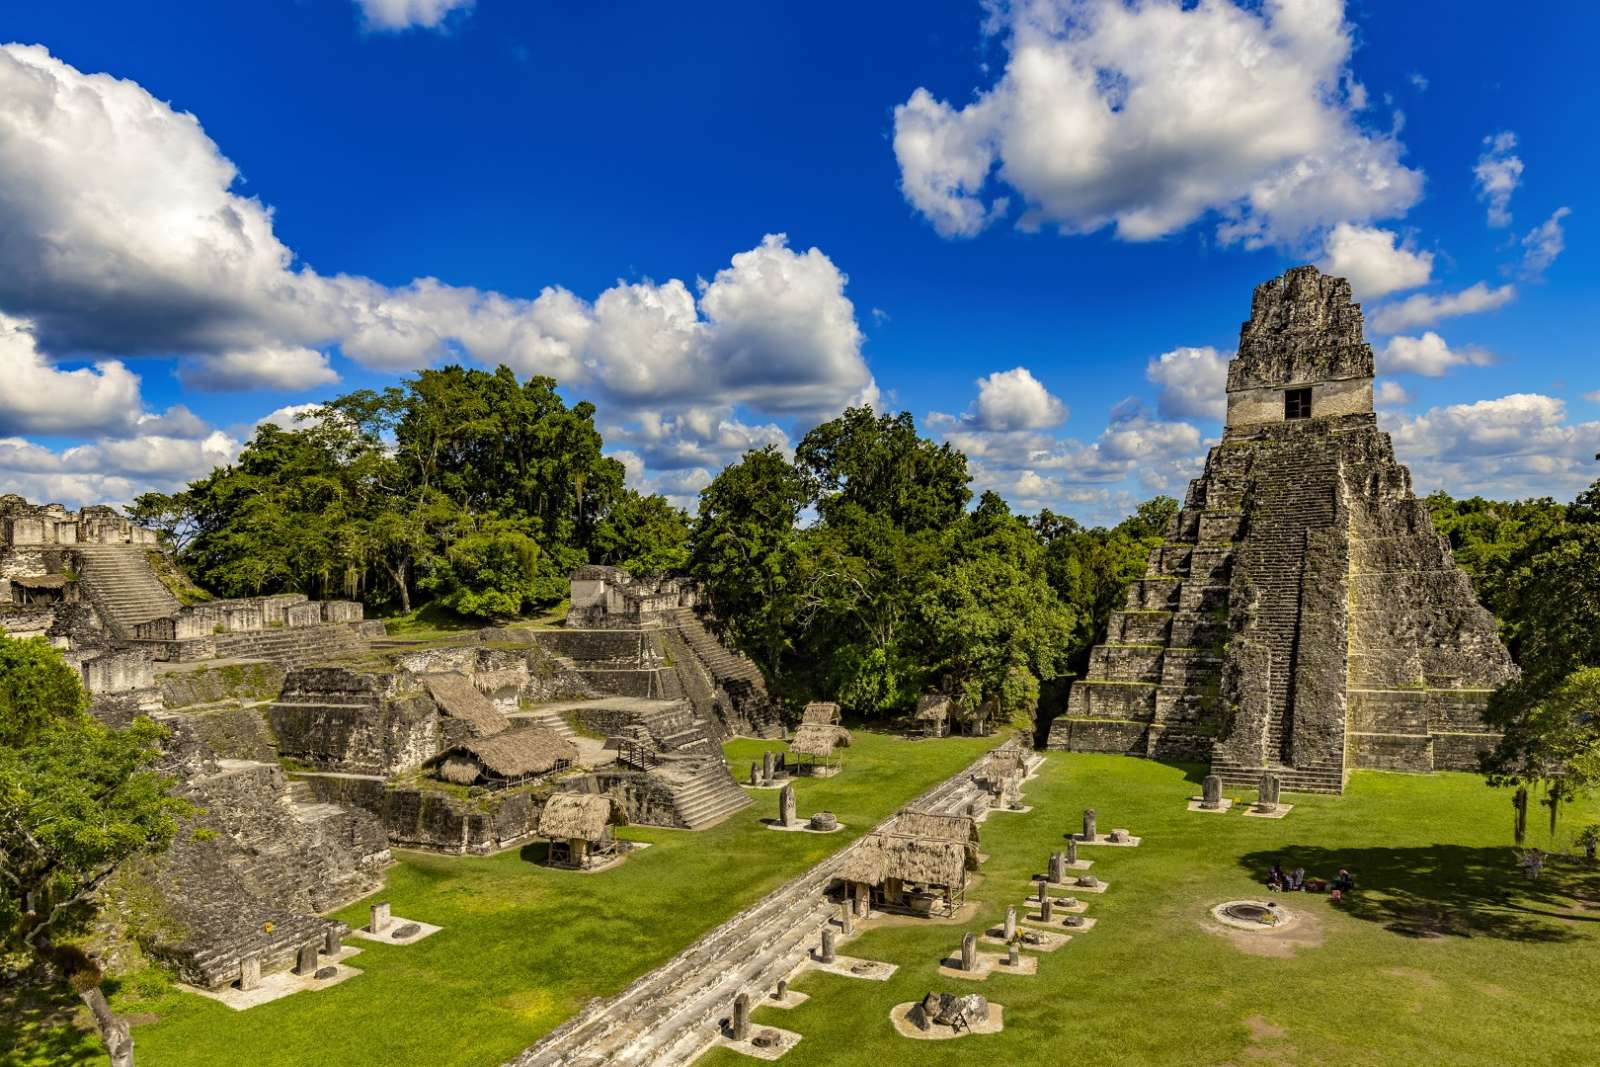 The Central Plaza at Tikal, Guatemala